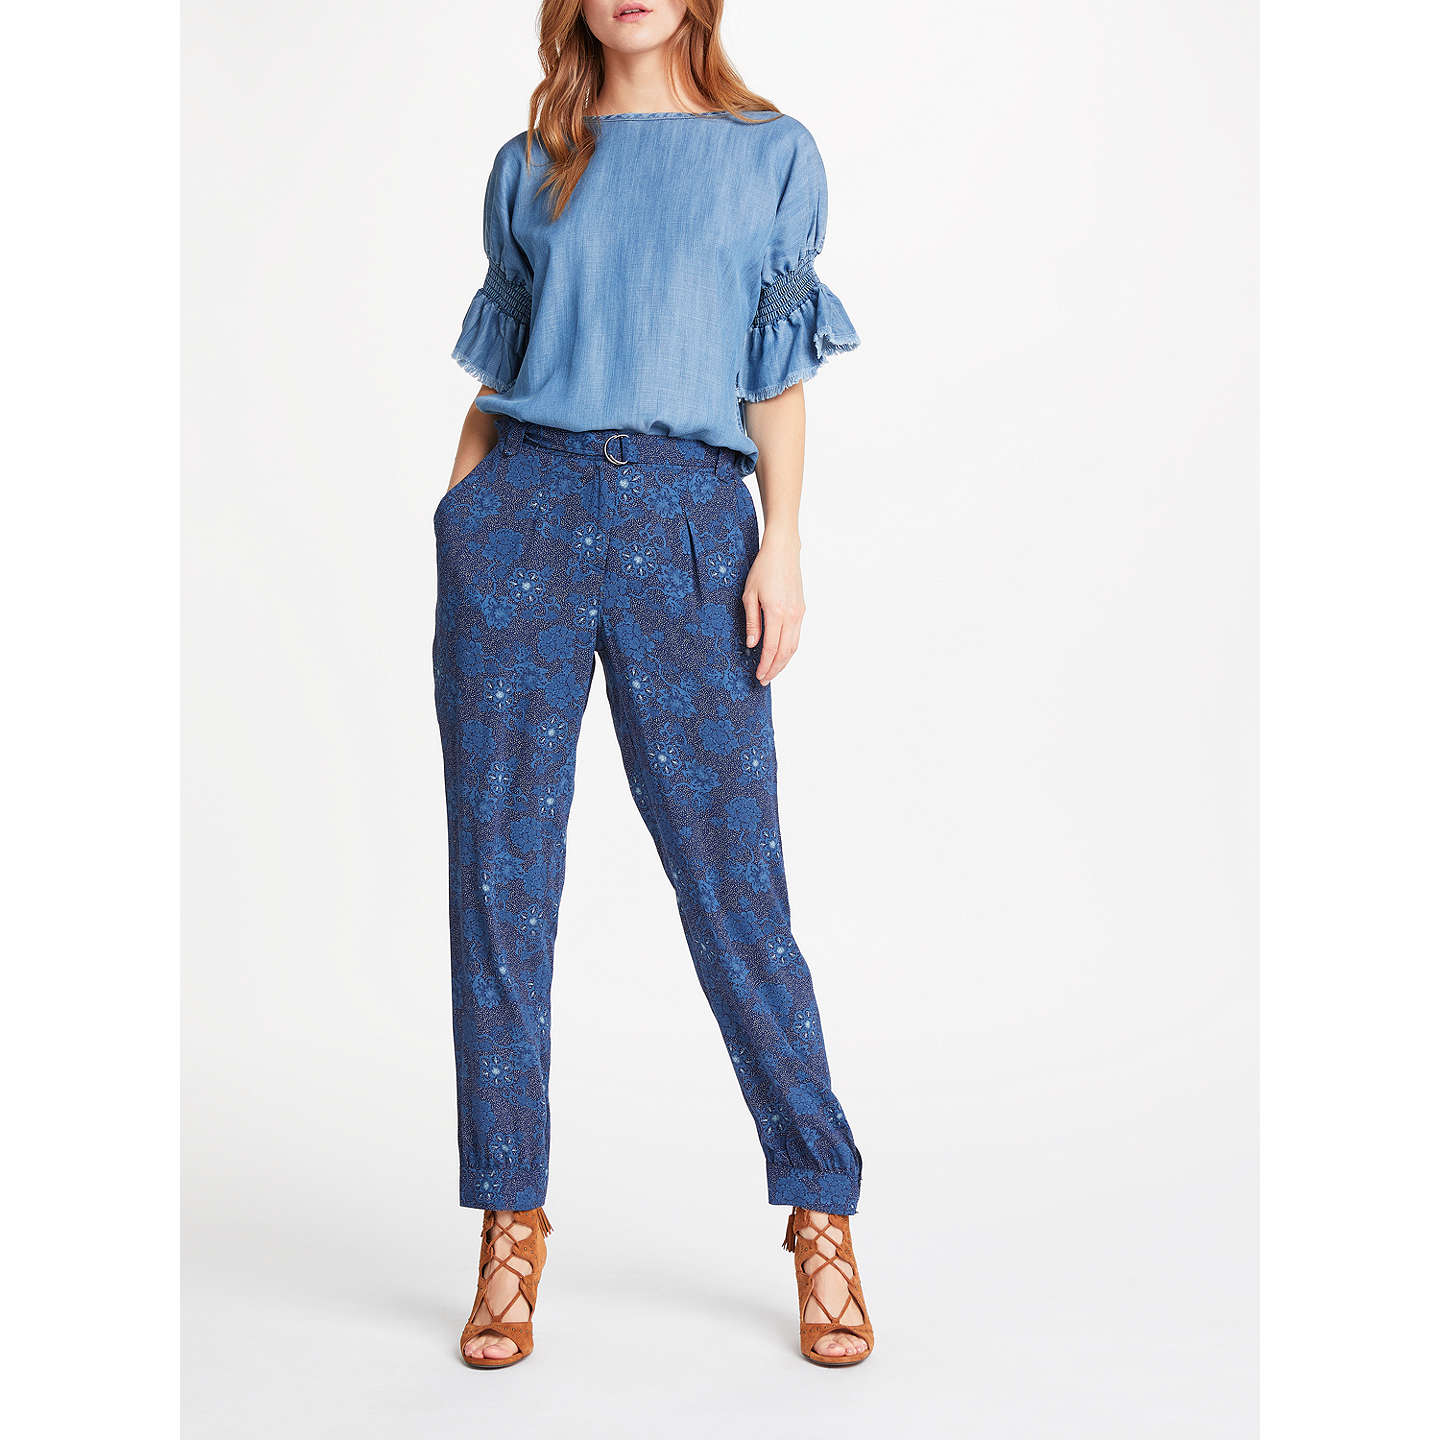 BuyAND/OR Floral Patsy Print Trousers, Indigo, 8 Online at johnlewis.com